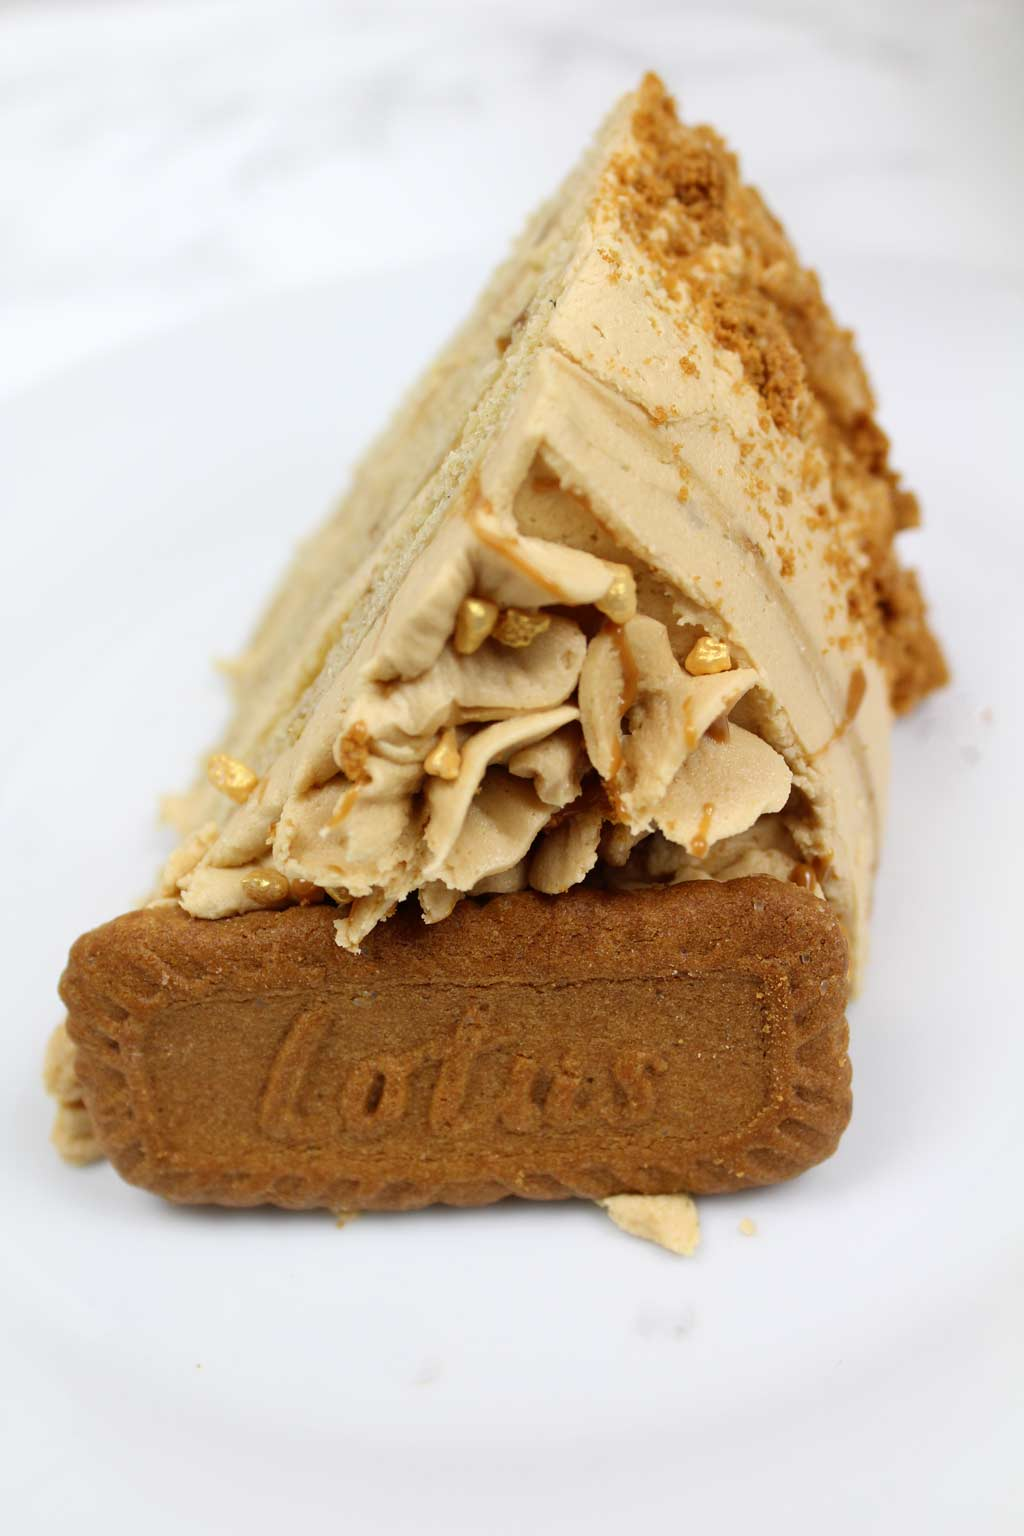 a slice of vegan Biscoff cake on a plate with a Biscoff cookie on top